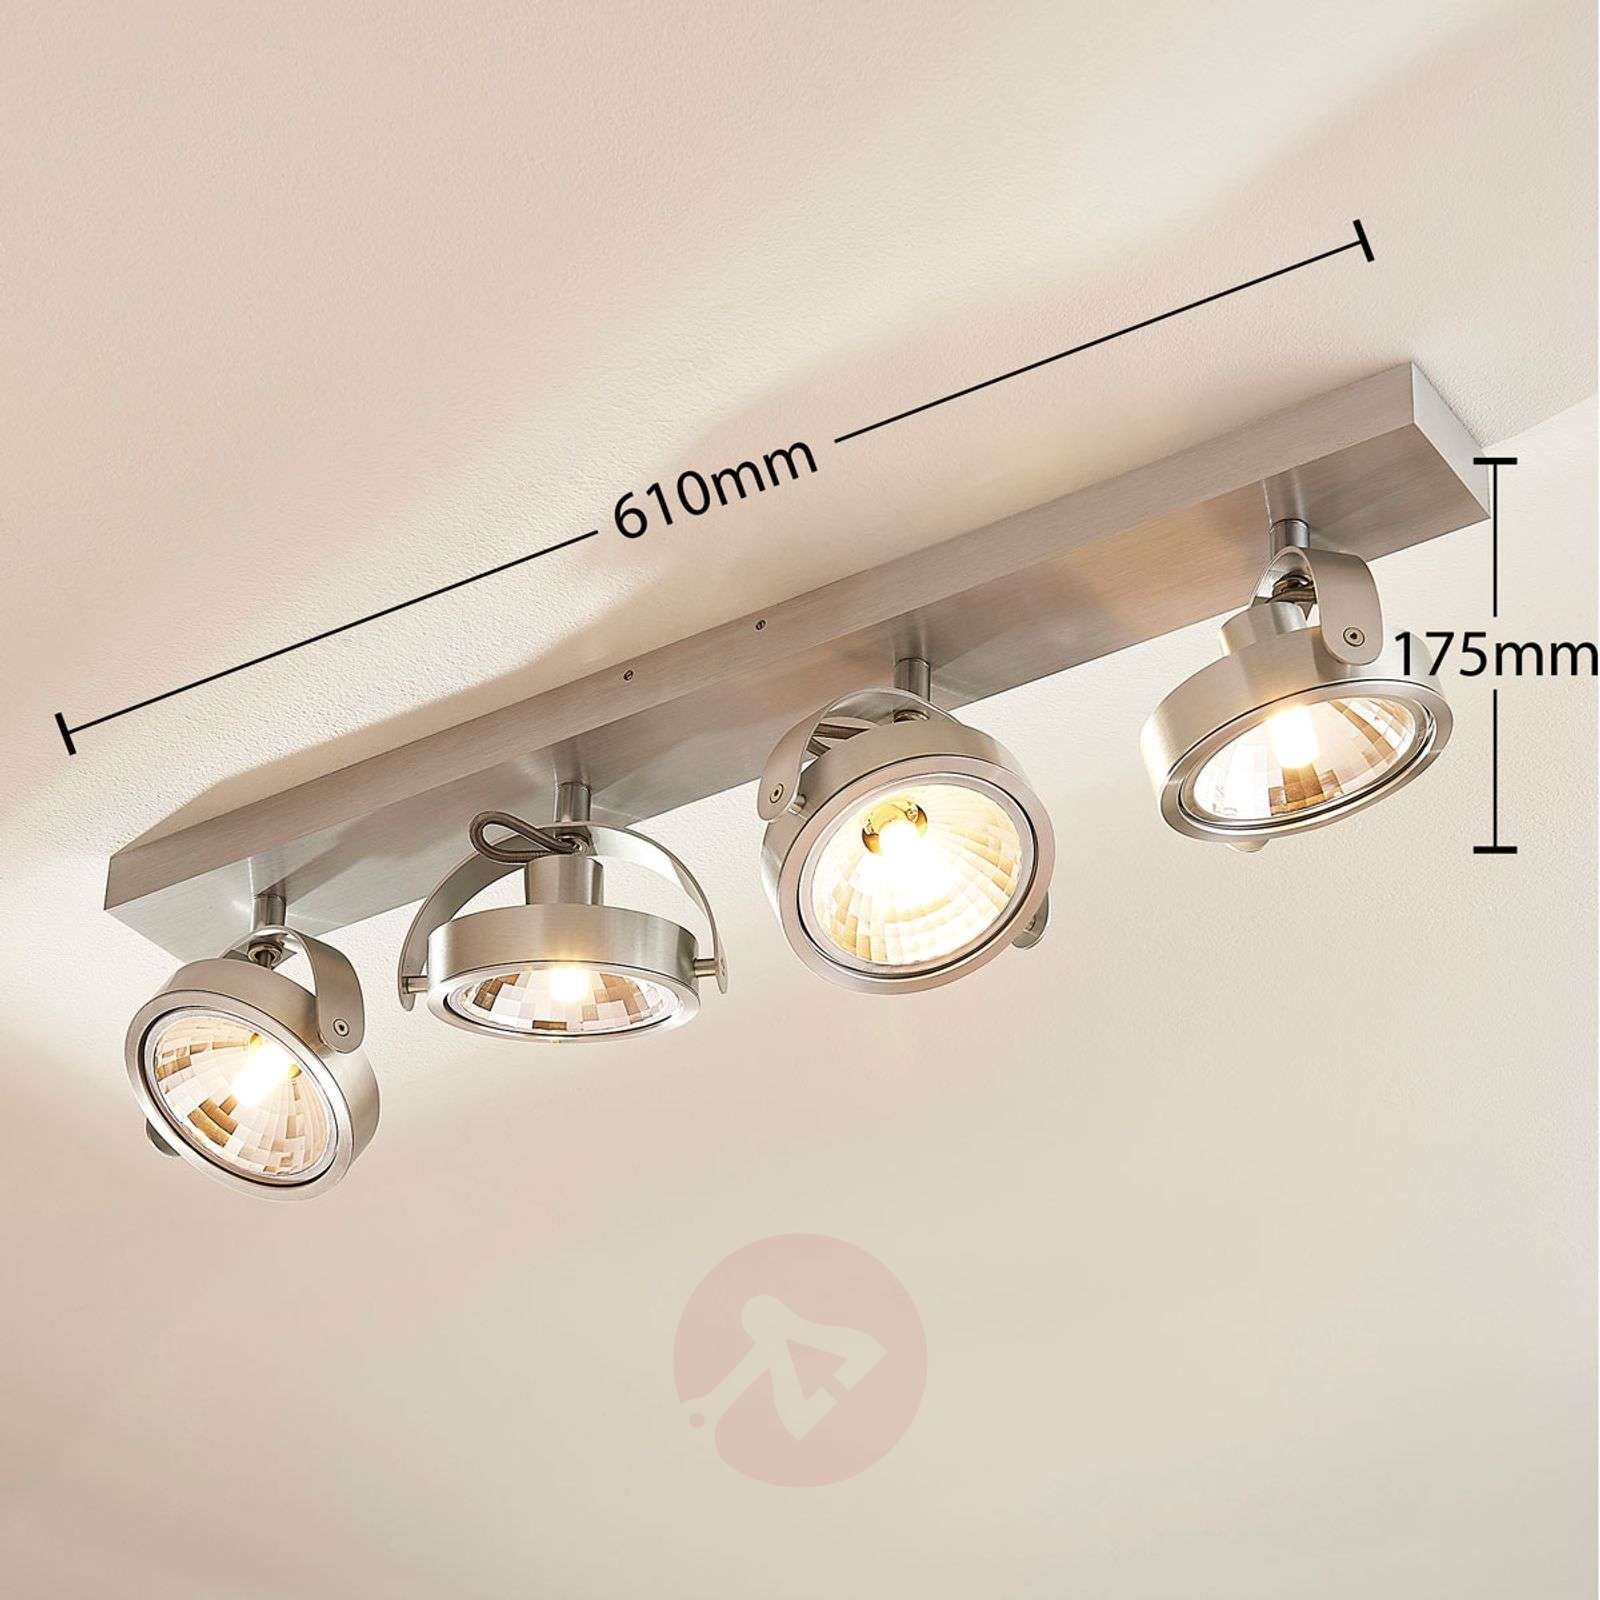 Lieven four-bulb LED ceiling light, aluminium-9621524-01